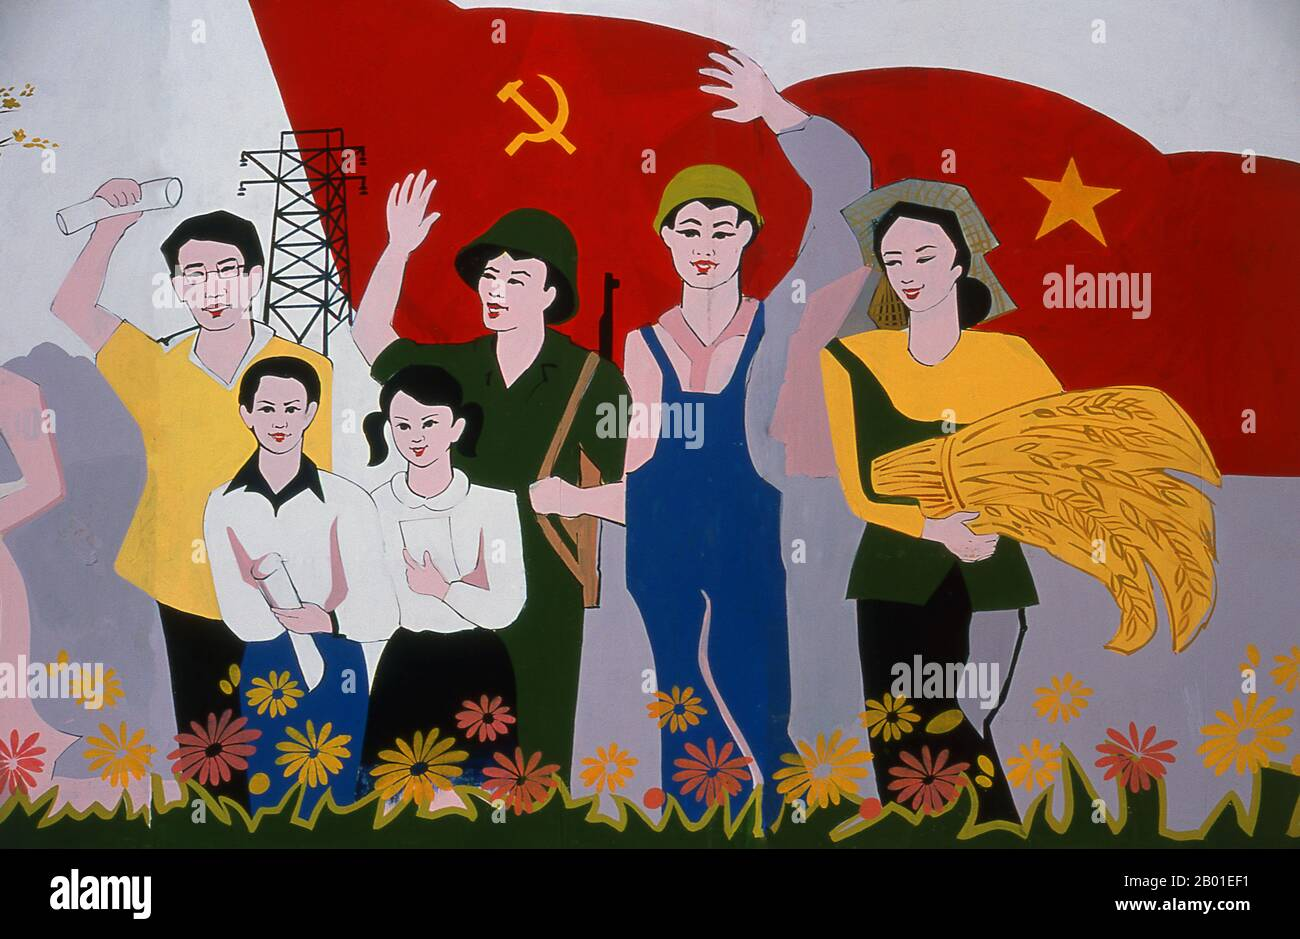 Socialist realism is a style of realistic art which was developed in the Soviet Union and became a dominant style in other communist countries. Socialist realism is a teleologically-oriented style having its purpose the furtherance of the goals of socialism and communism. Although related, it should not be confused with social realism, a type of art that realistically depicts subjects of social concern. Unlike social realism, socialist realism often glorifies the roles of the poor. Stock Photo